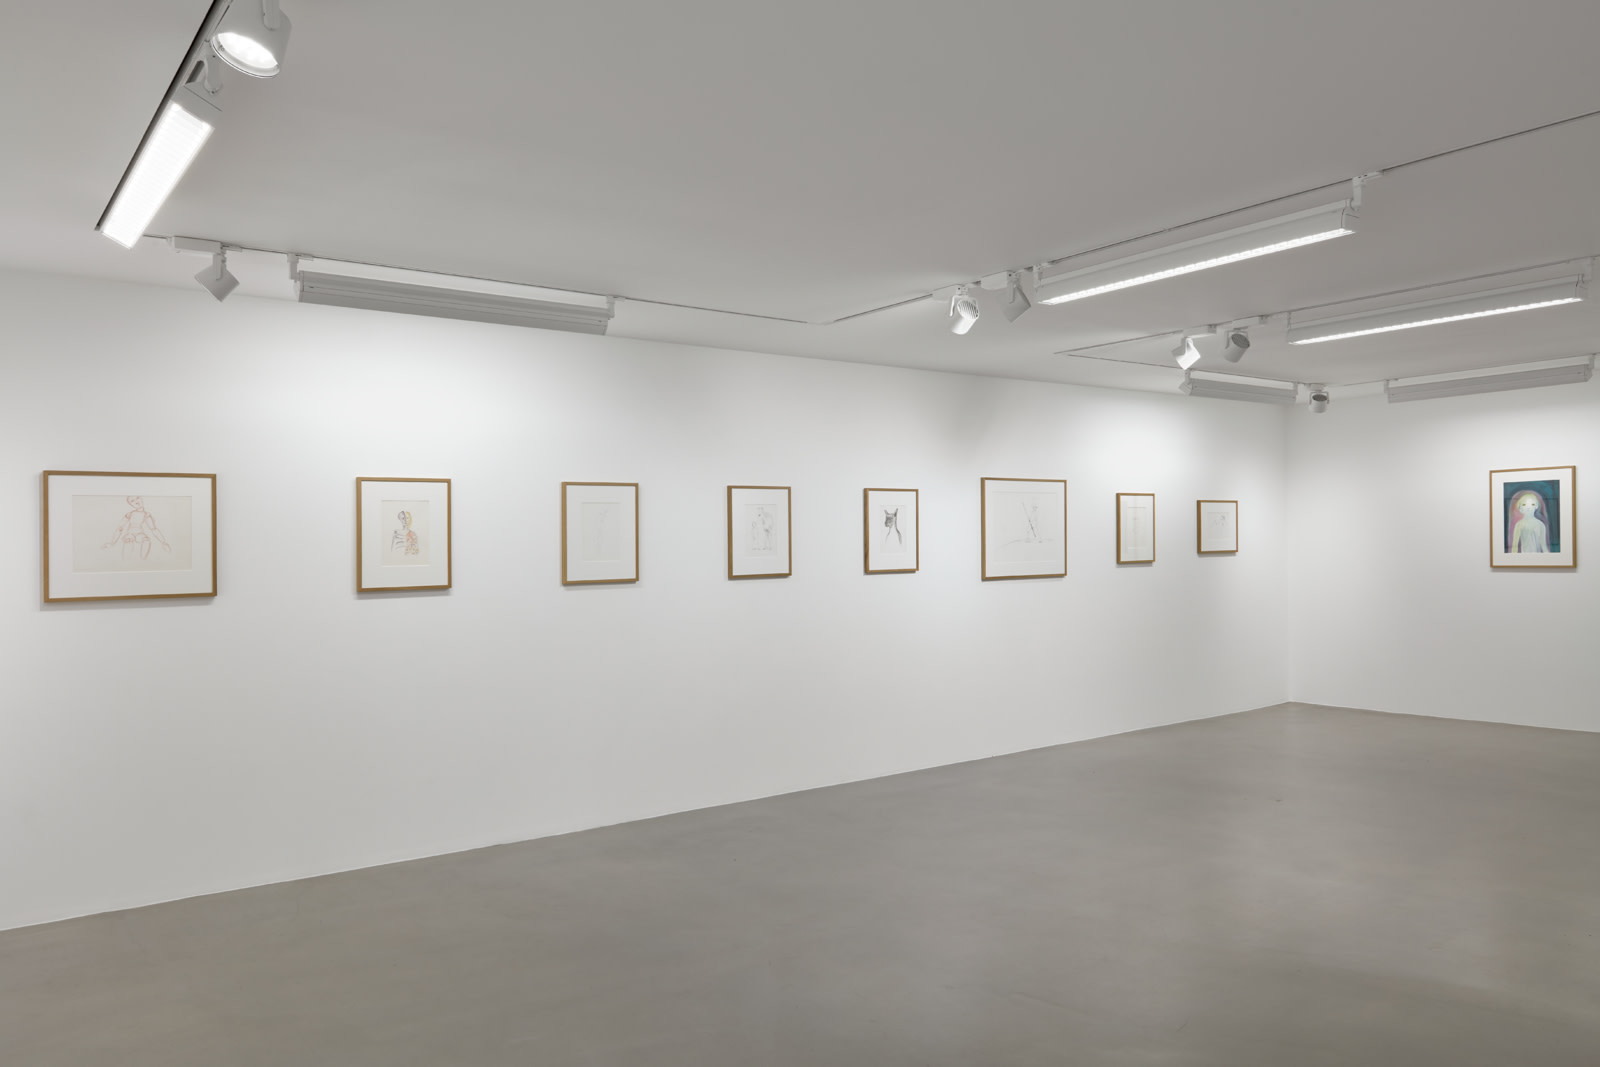 <p>Installation view, 2018</p><p>Photo by Robert Glowacki</p>